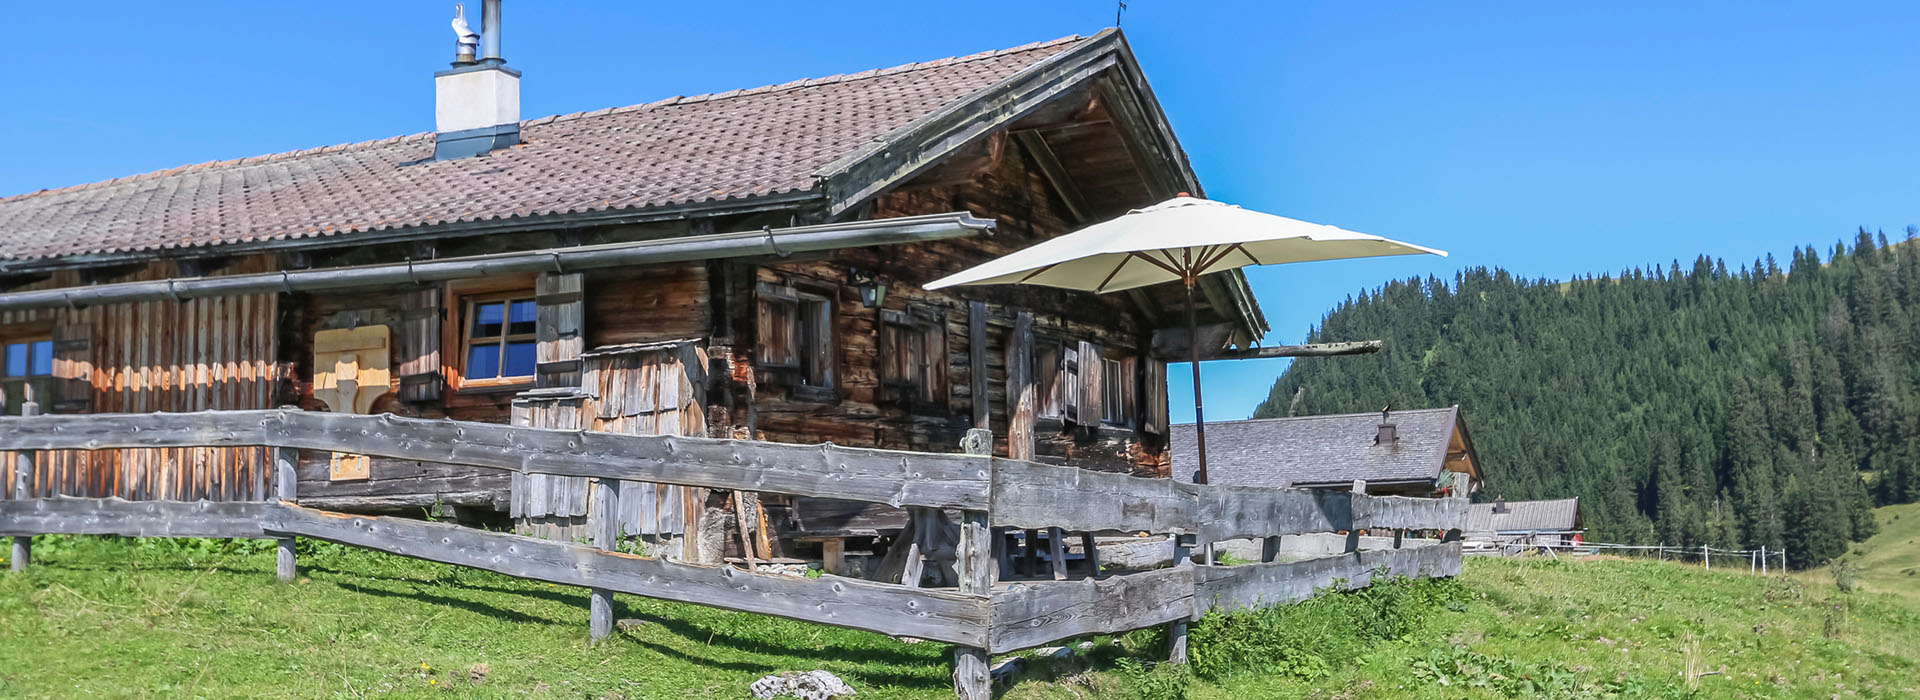 The Postkaser and Postalm in Lofer - Alpine chalet holidays in Austria